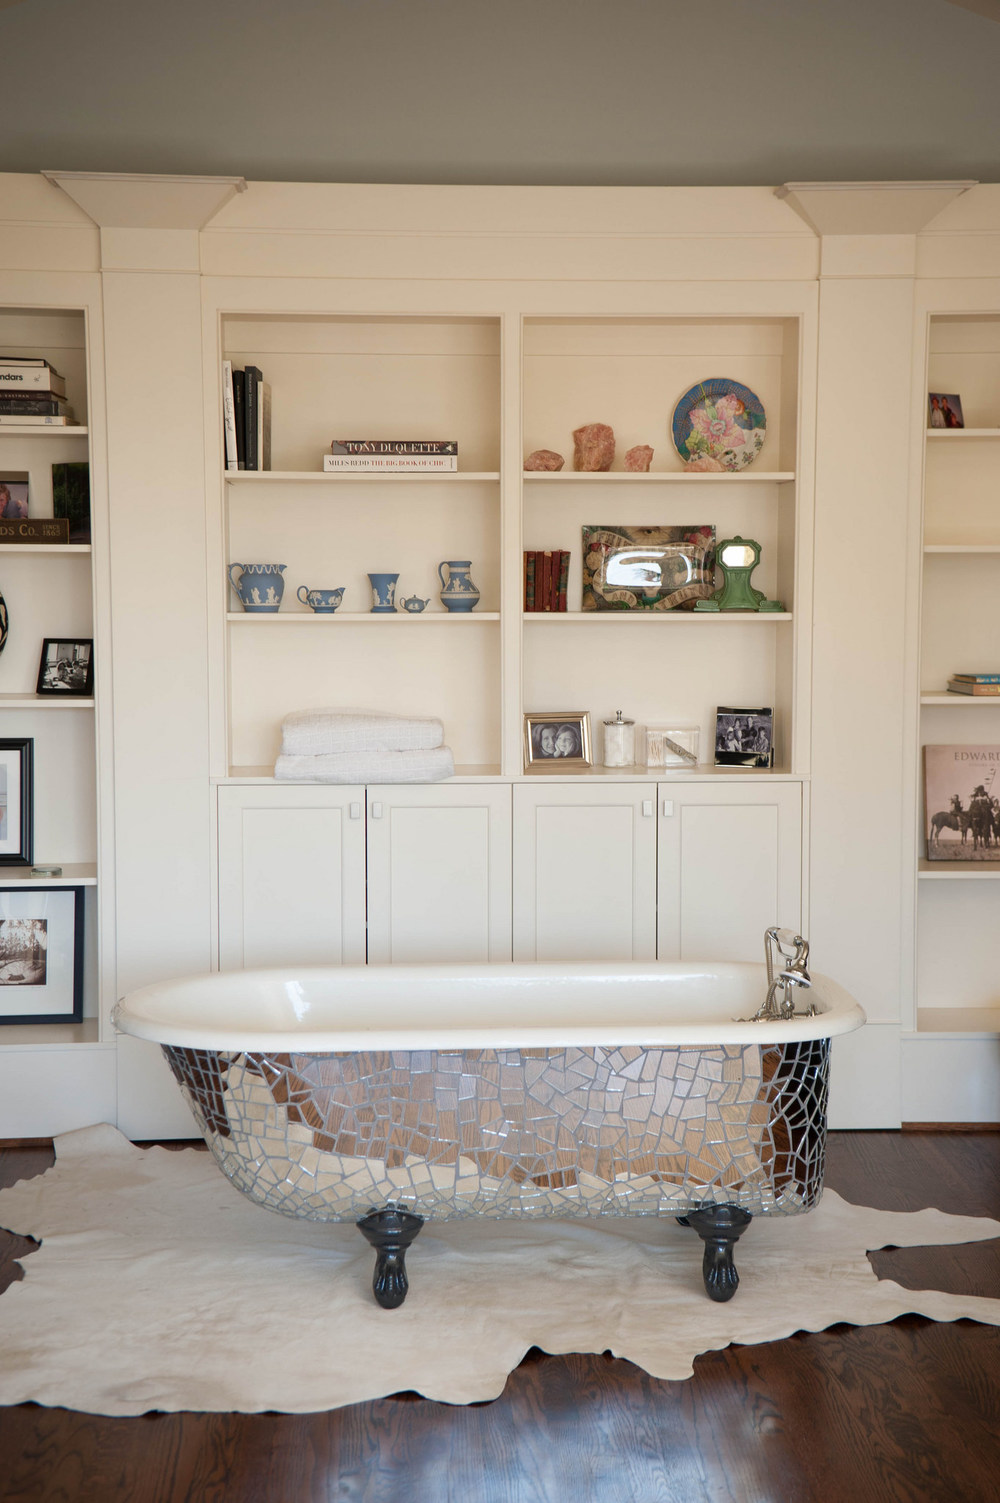 The Chameleon — Looking Glass Baths